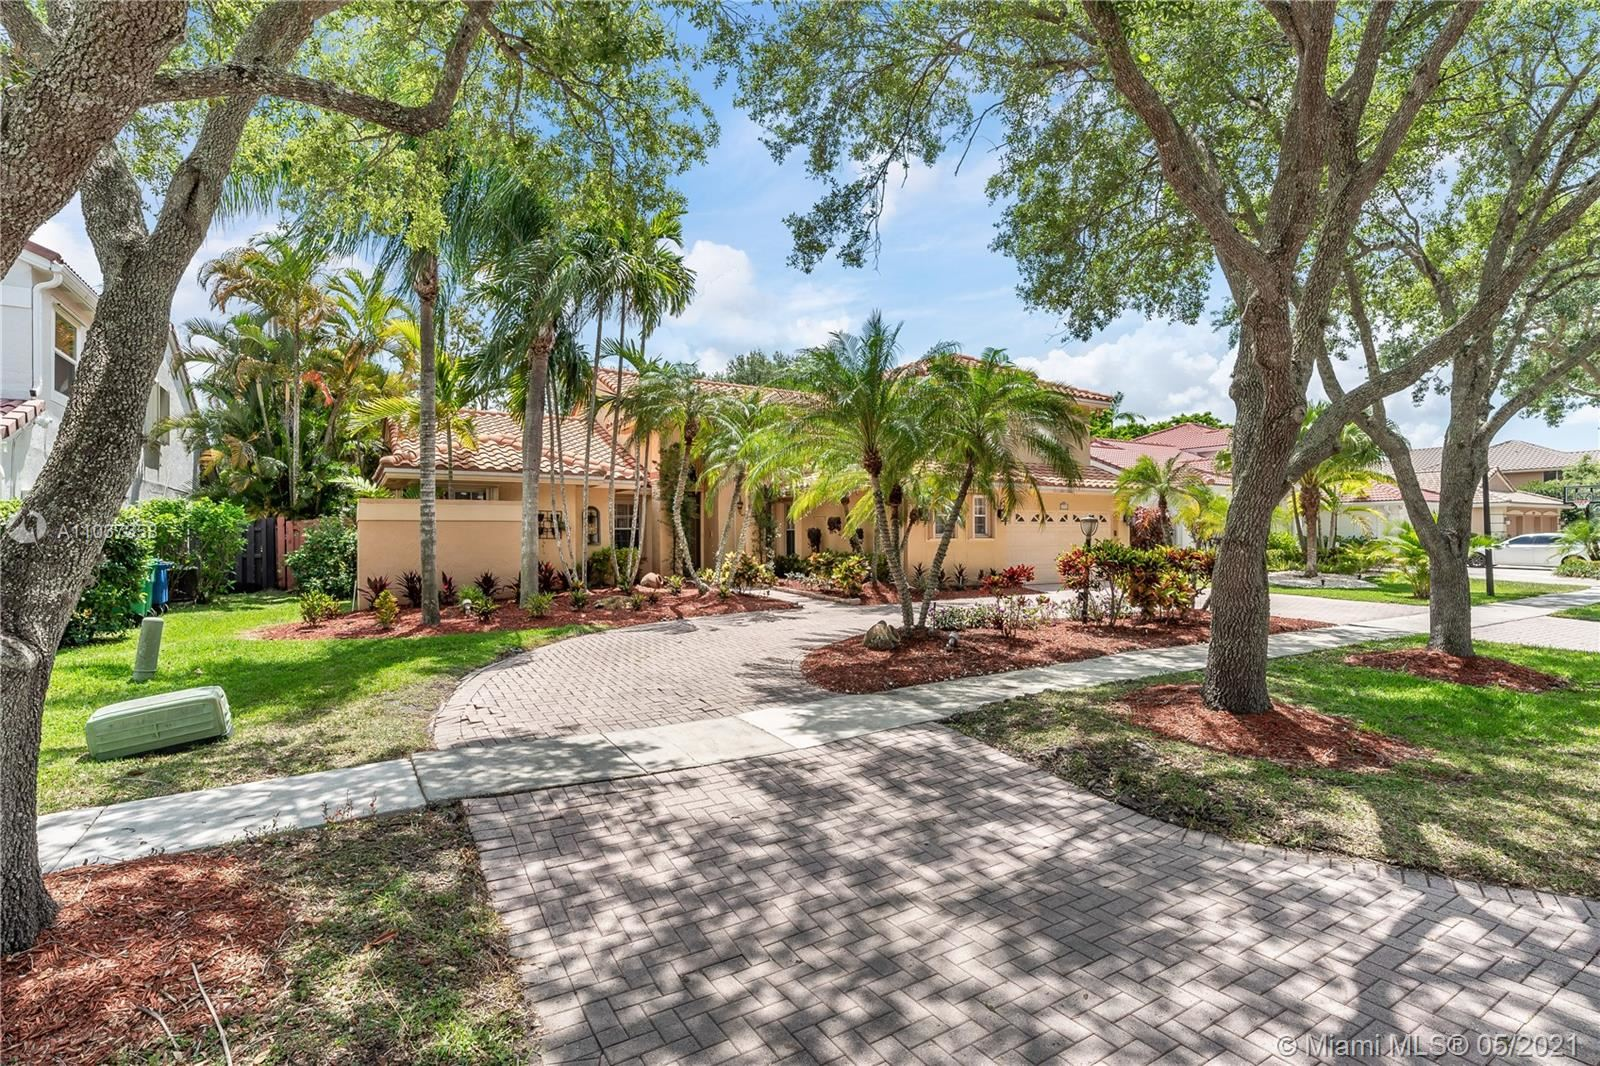 Photo of 3797 Barbados Ave, Cooper City, FL 33026 (MLS # A11037358)